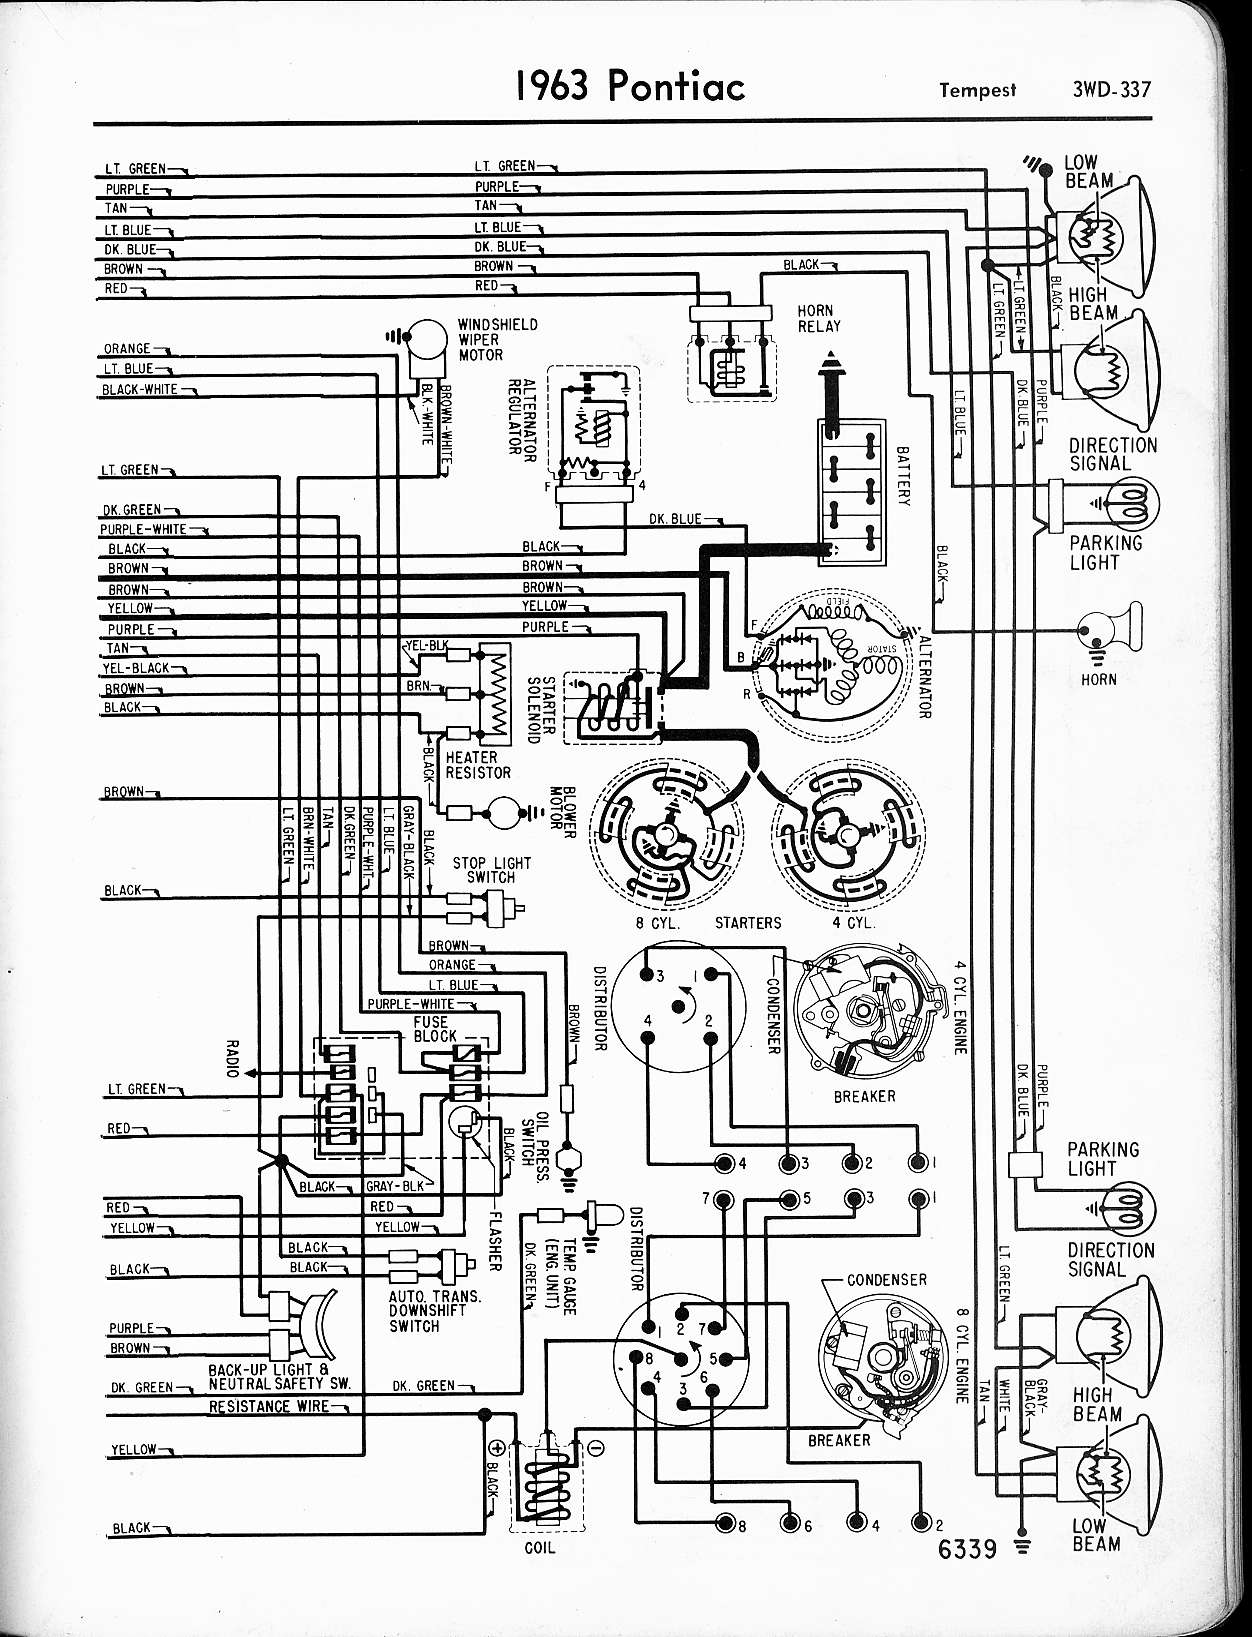 1963 impala ss wiring diagram water cycle with questions 64 drawing at getdrawings free for personal